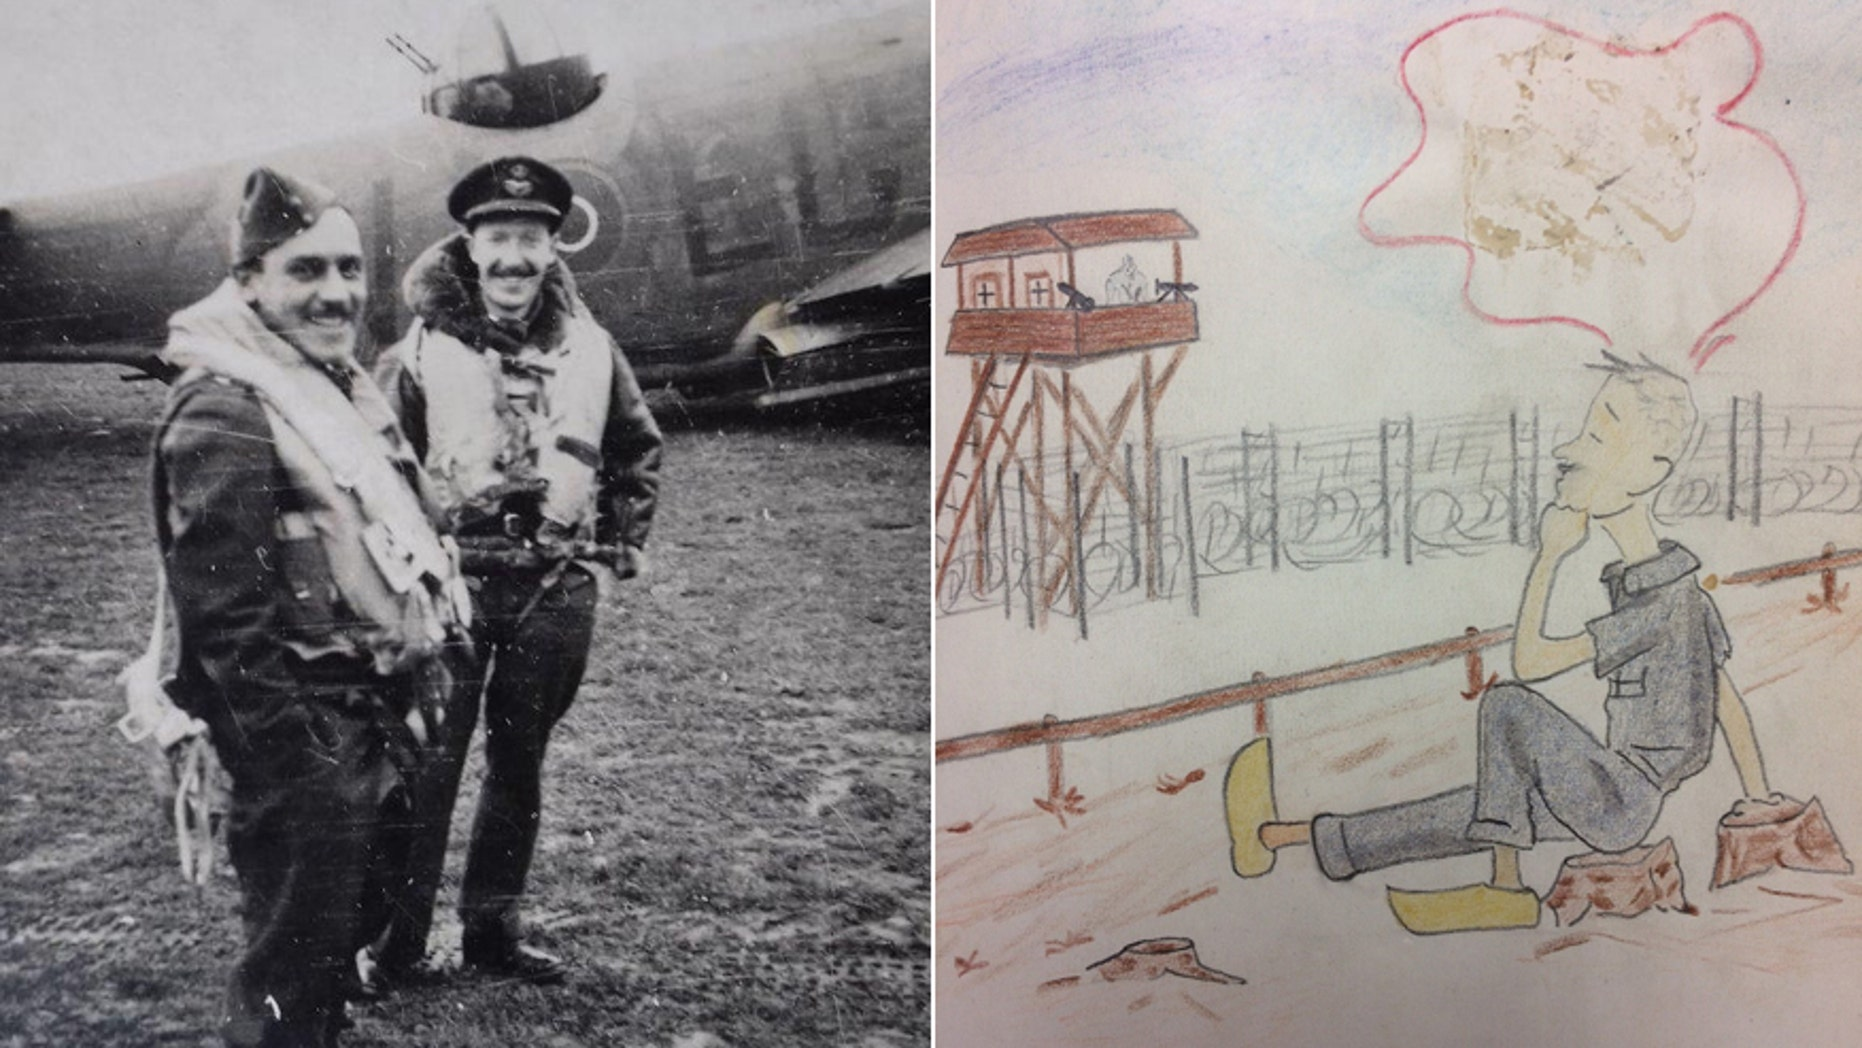 RAF Flt. Lt. Viv Phillips (left) and a fellow officer during World War II/a cartoon from Phillips' diary of life as a POW. (Hansons Auctioneers)